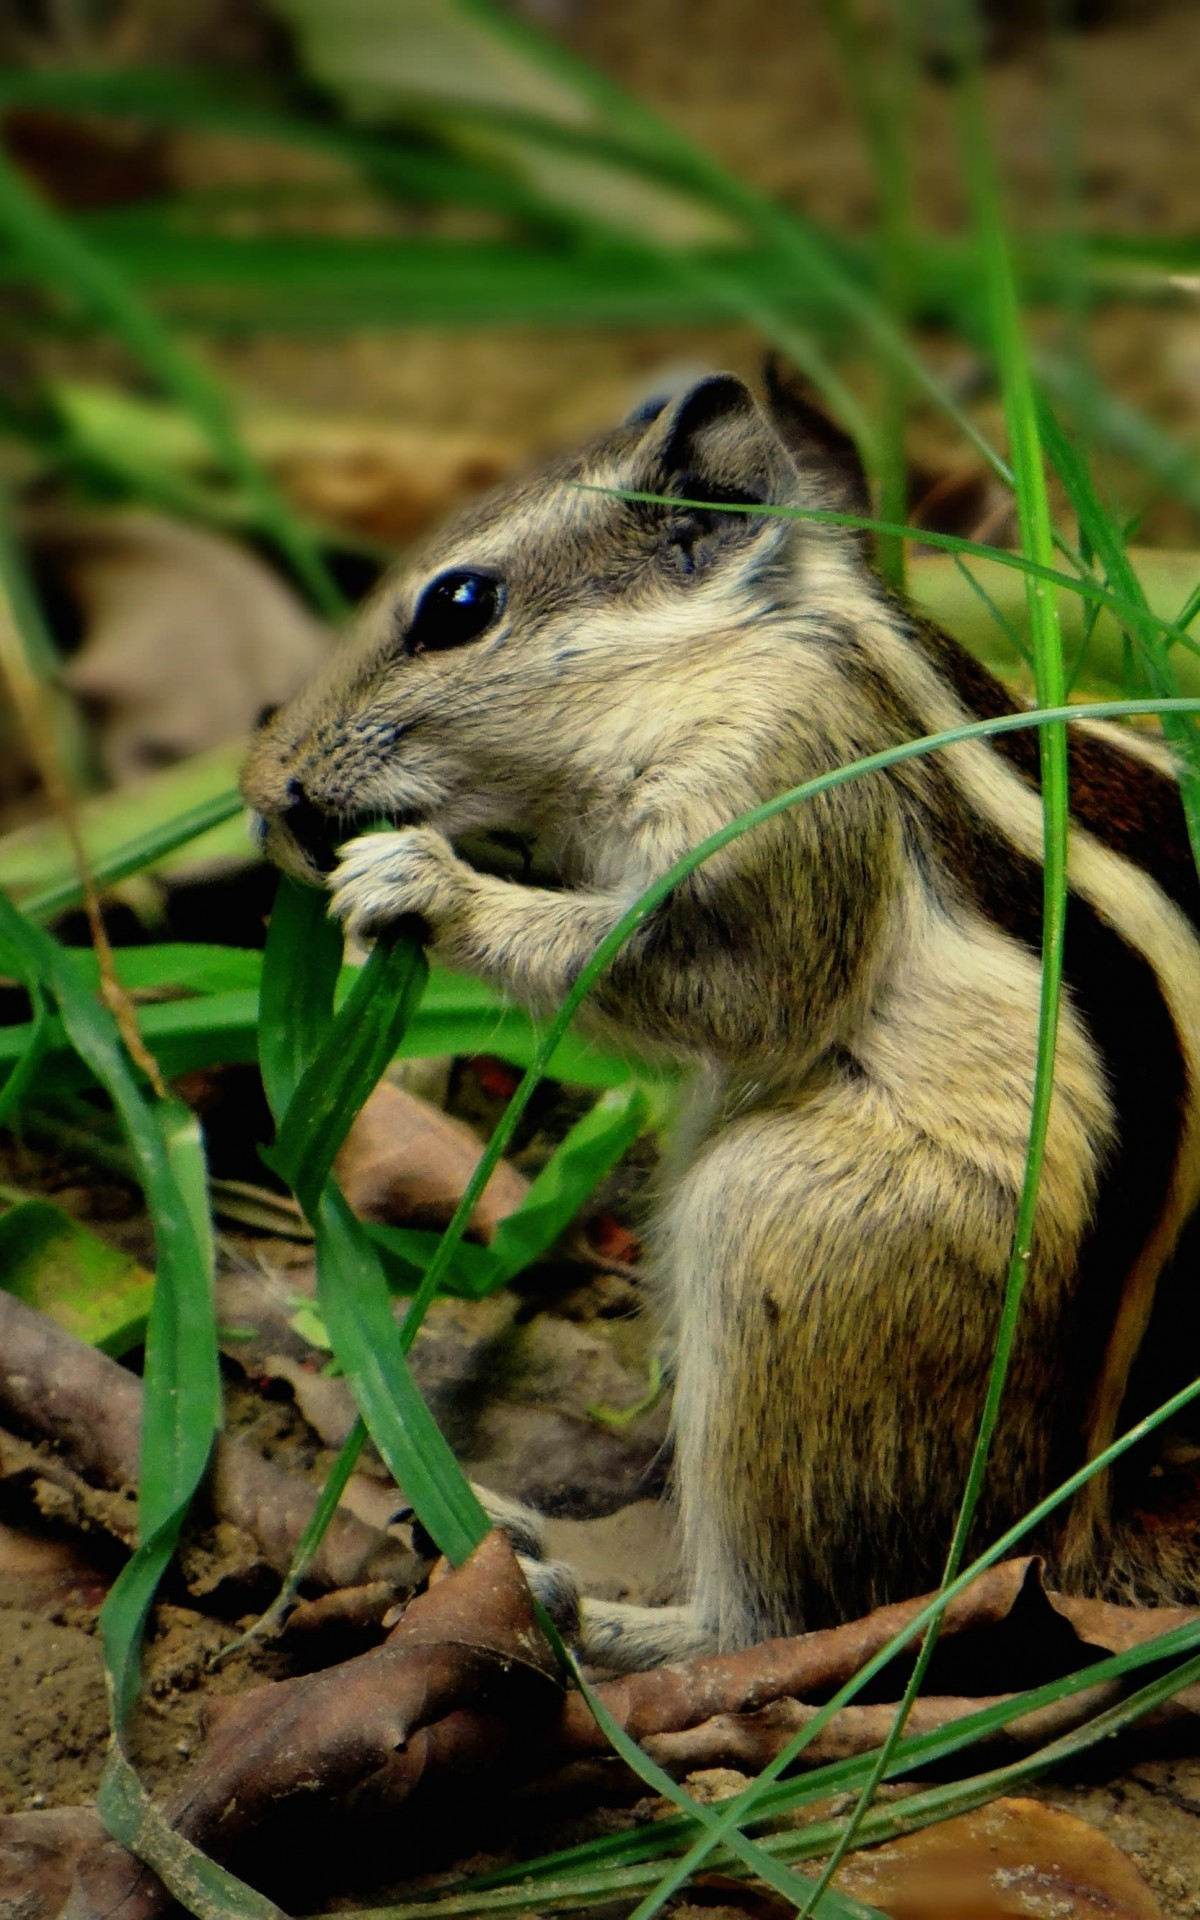 Chipmunk In The Grass Wallpaper for Amazon Kindle Fire HDX